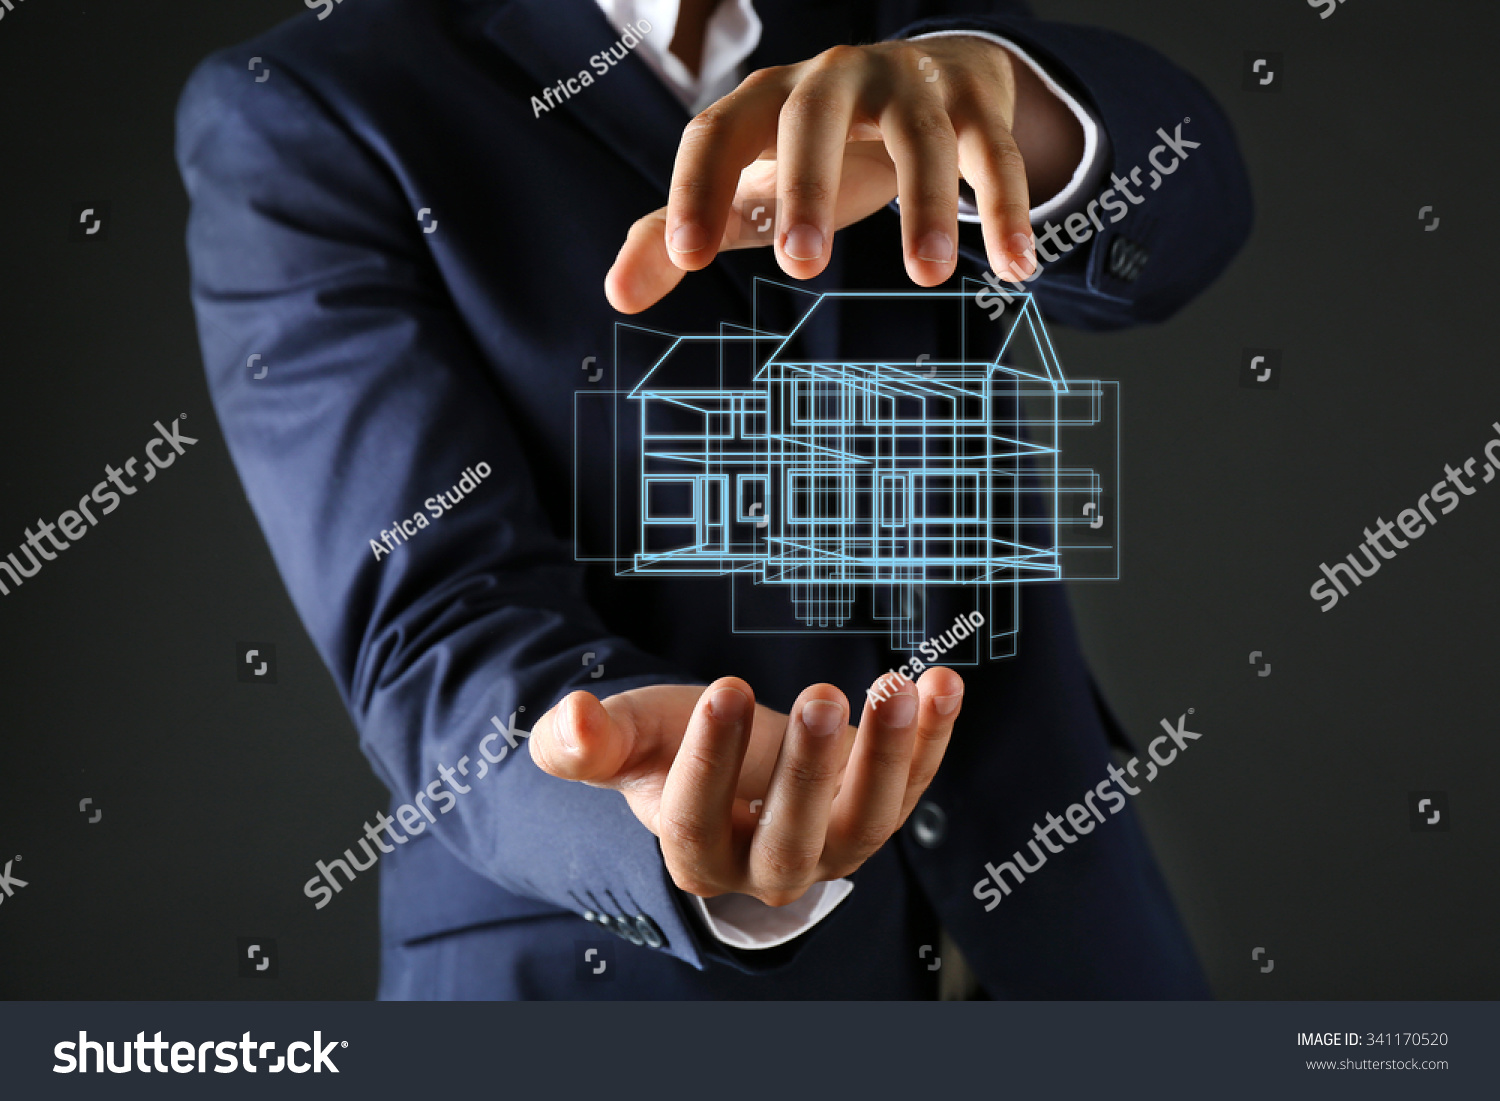 Real estate offer. Businessman holds an artificial model of the house #341170520